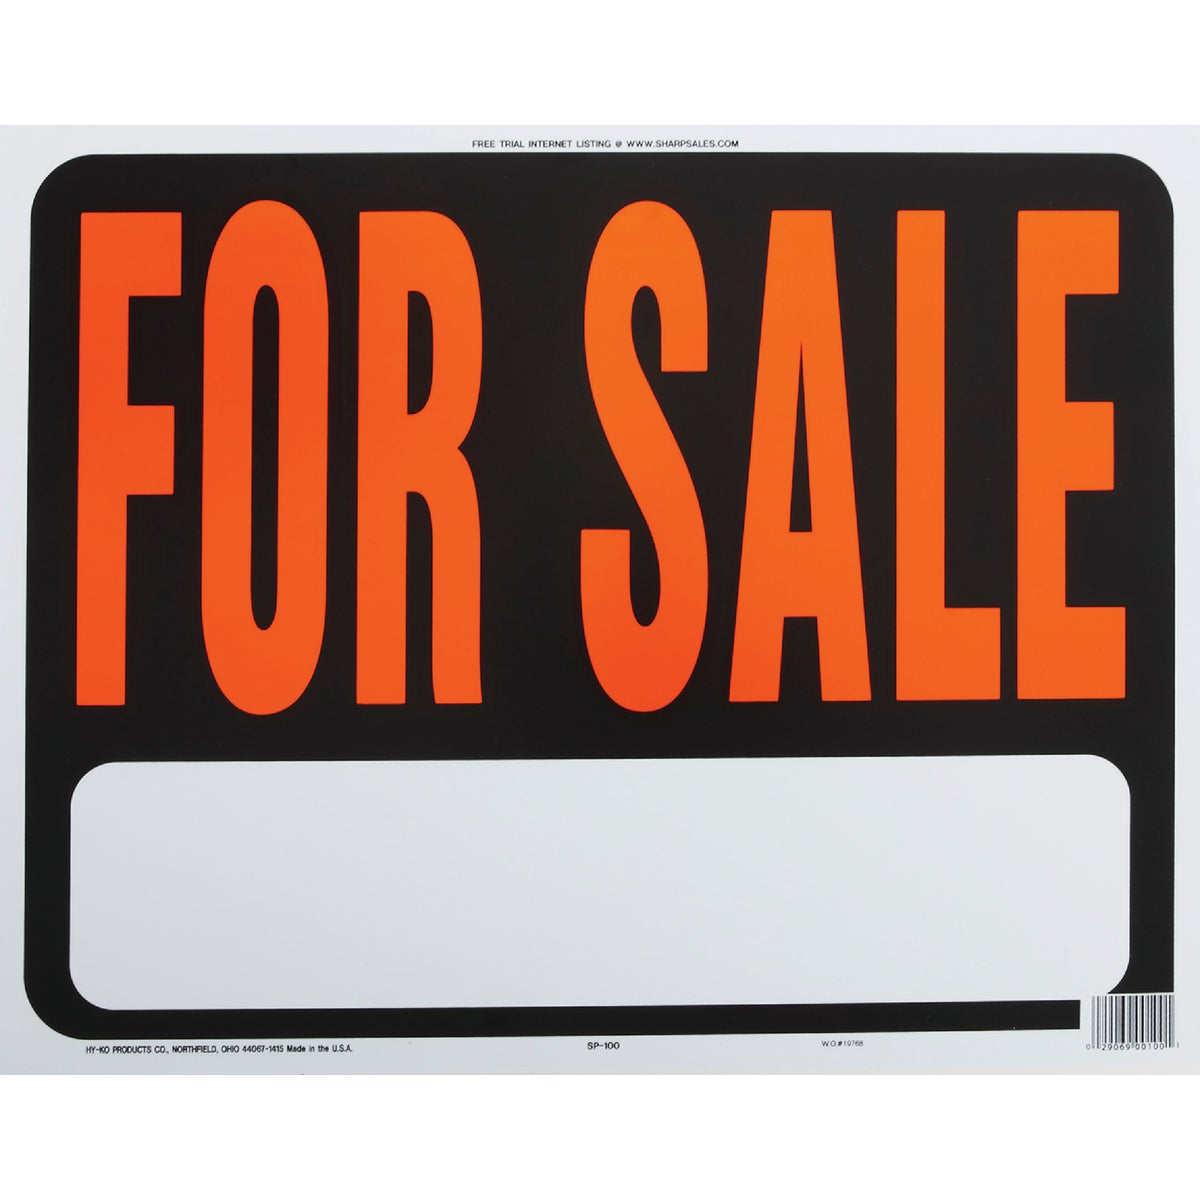 15X19 FOR SALE SIGN - SP-100 by Hy Ko Prods Co